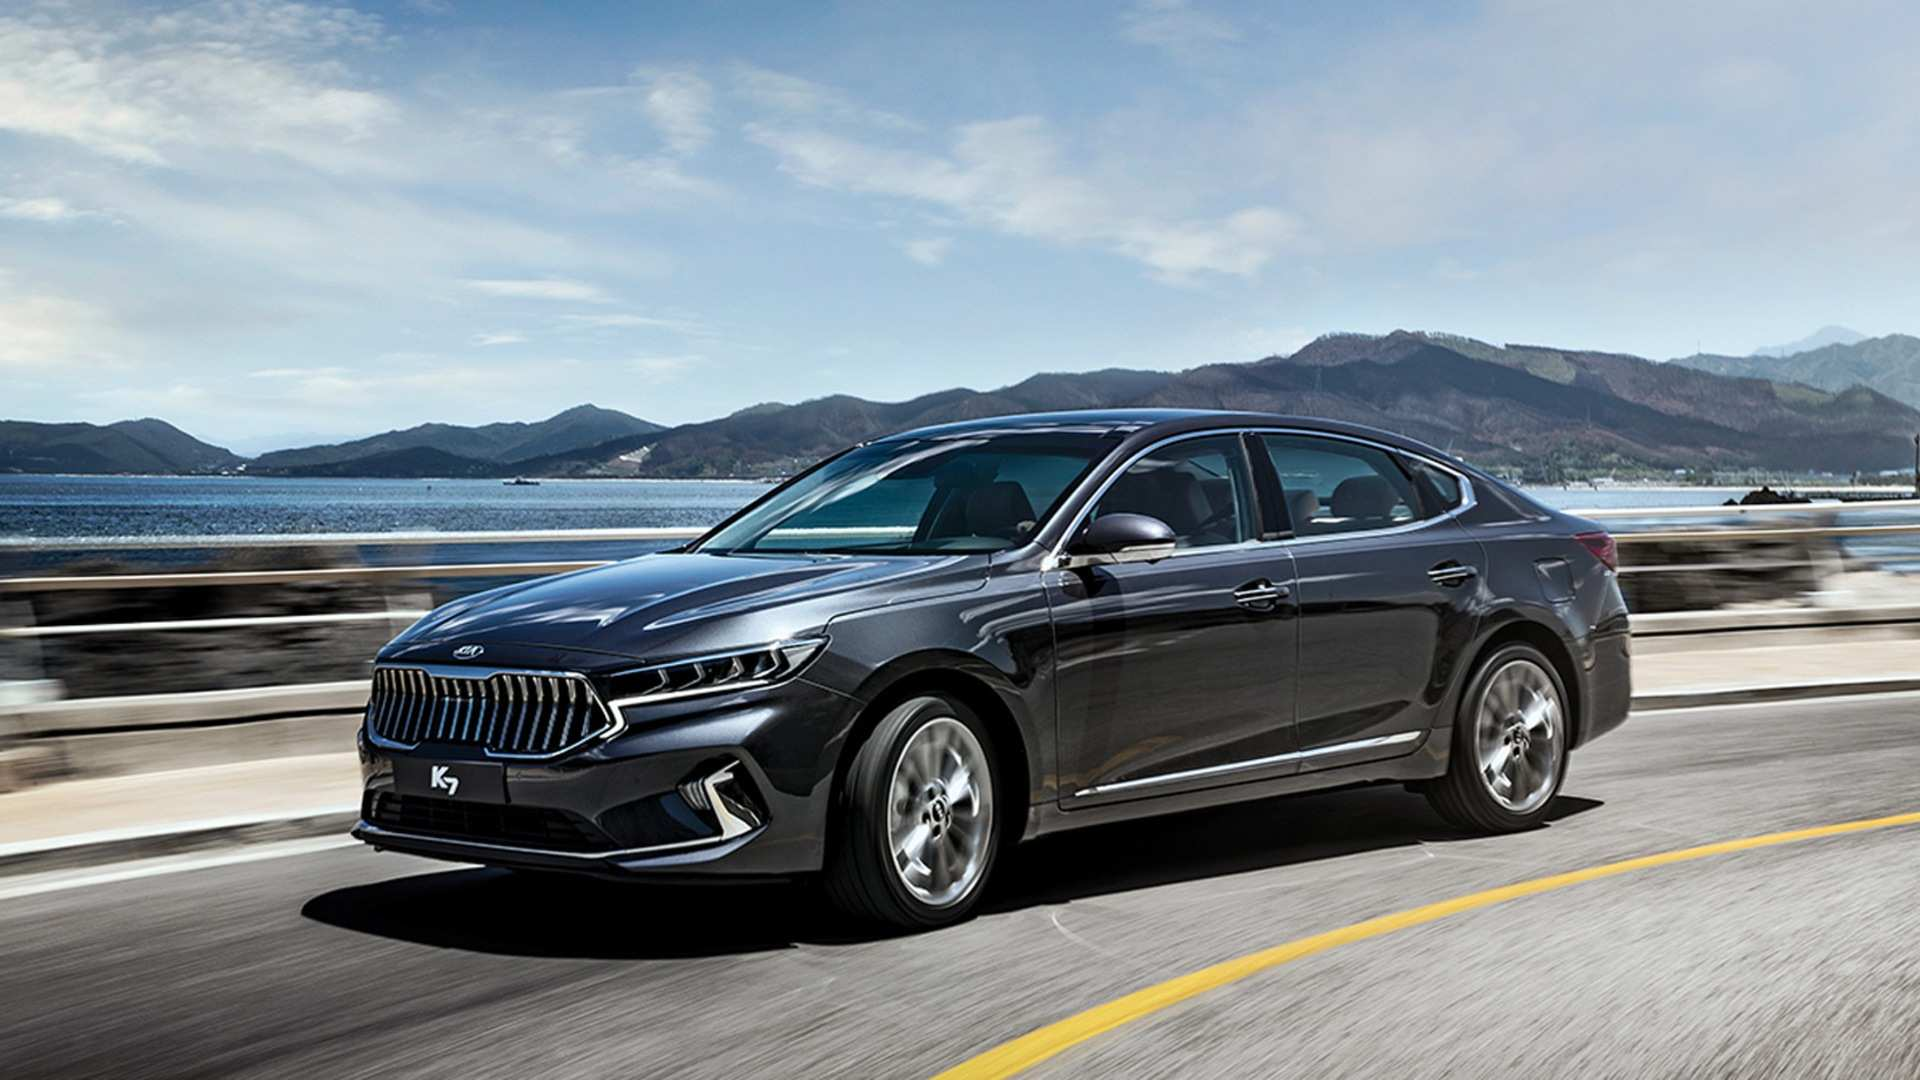 81 All New 2020 All Kia Cadenza Concept